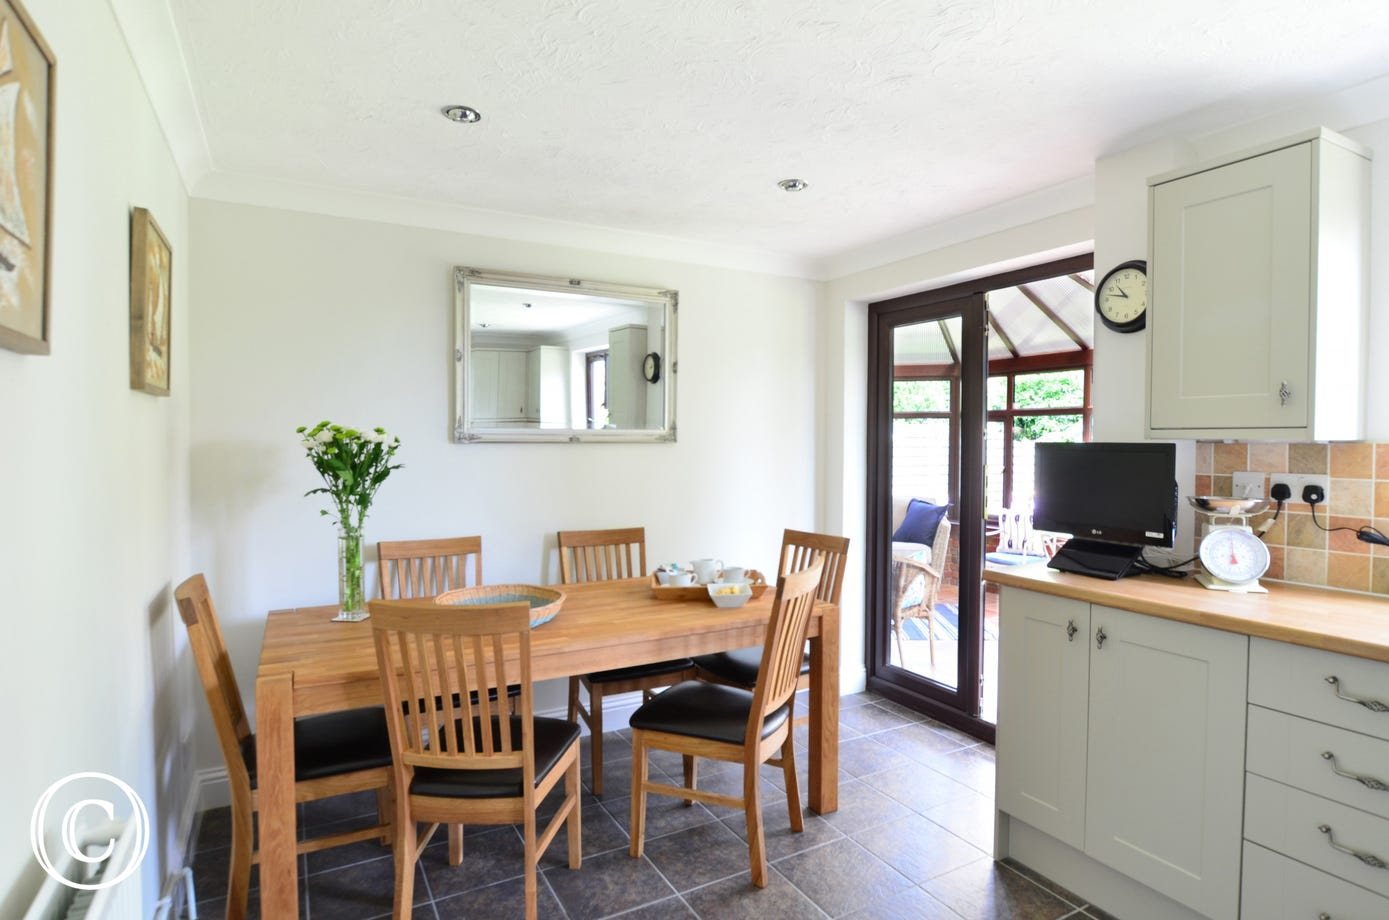 Lovely dining area with table and chairs and door leading to the conservatory